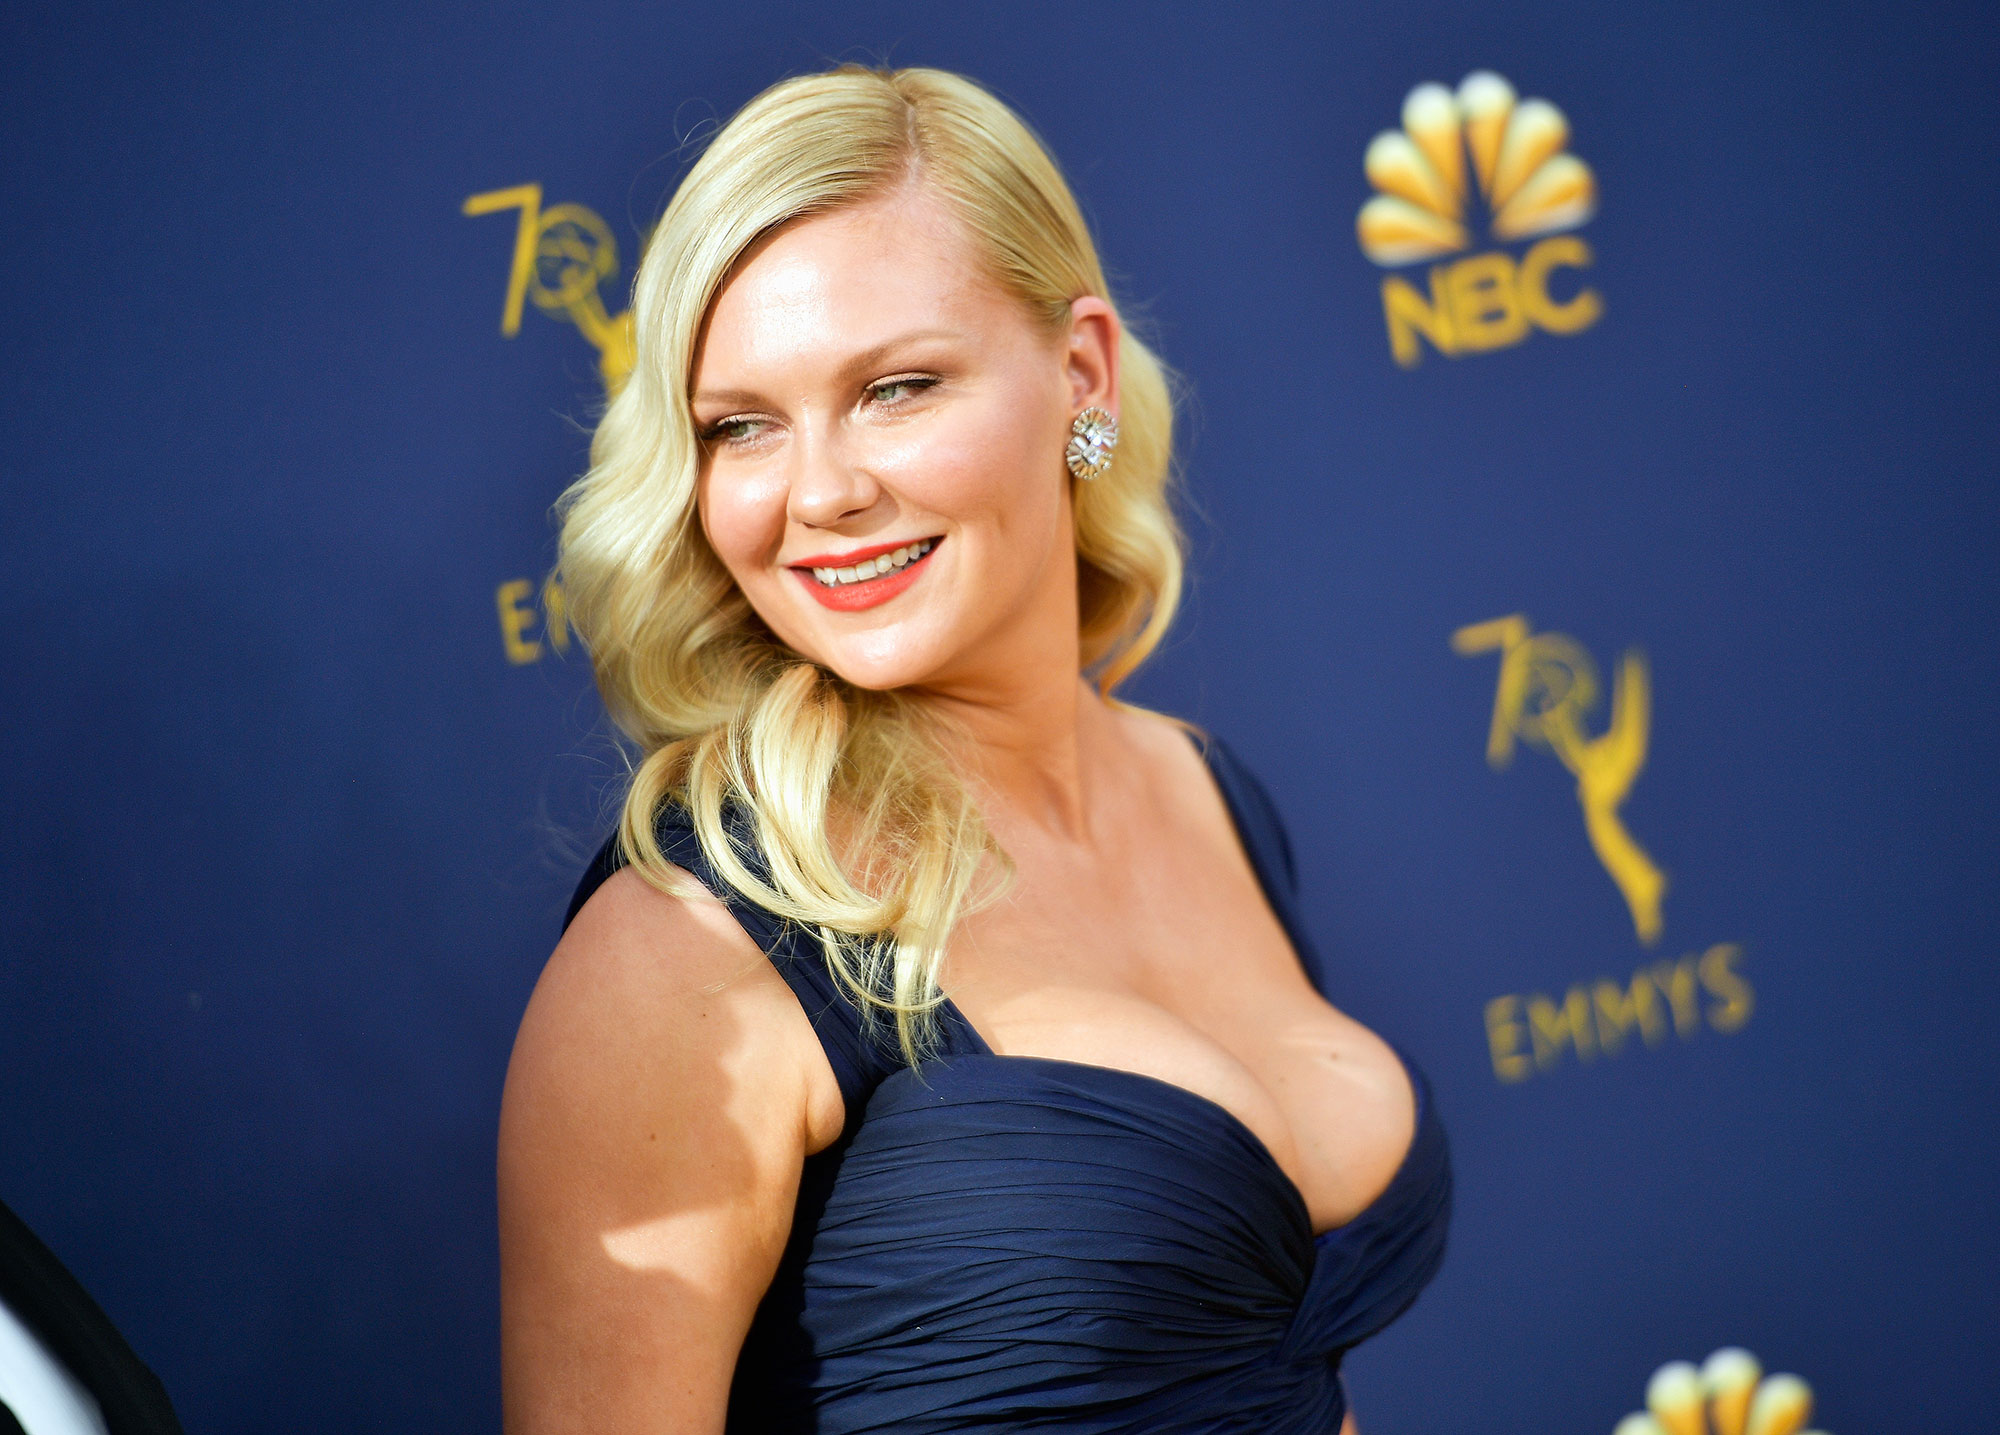 Kirsten Dunst Films In A Bathing Suit 6 Months After Giving Birt